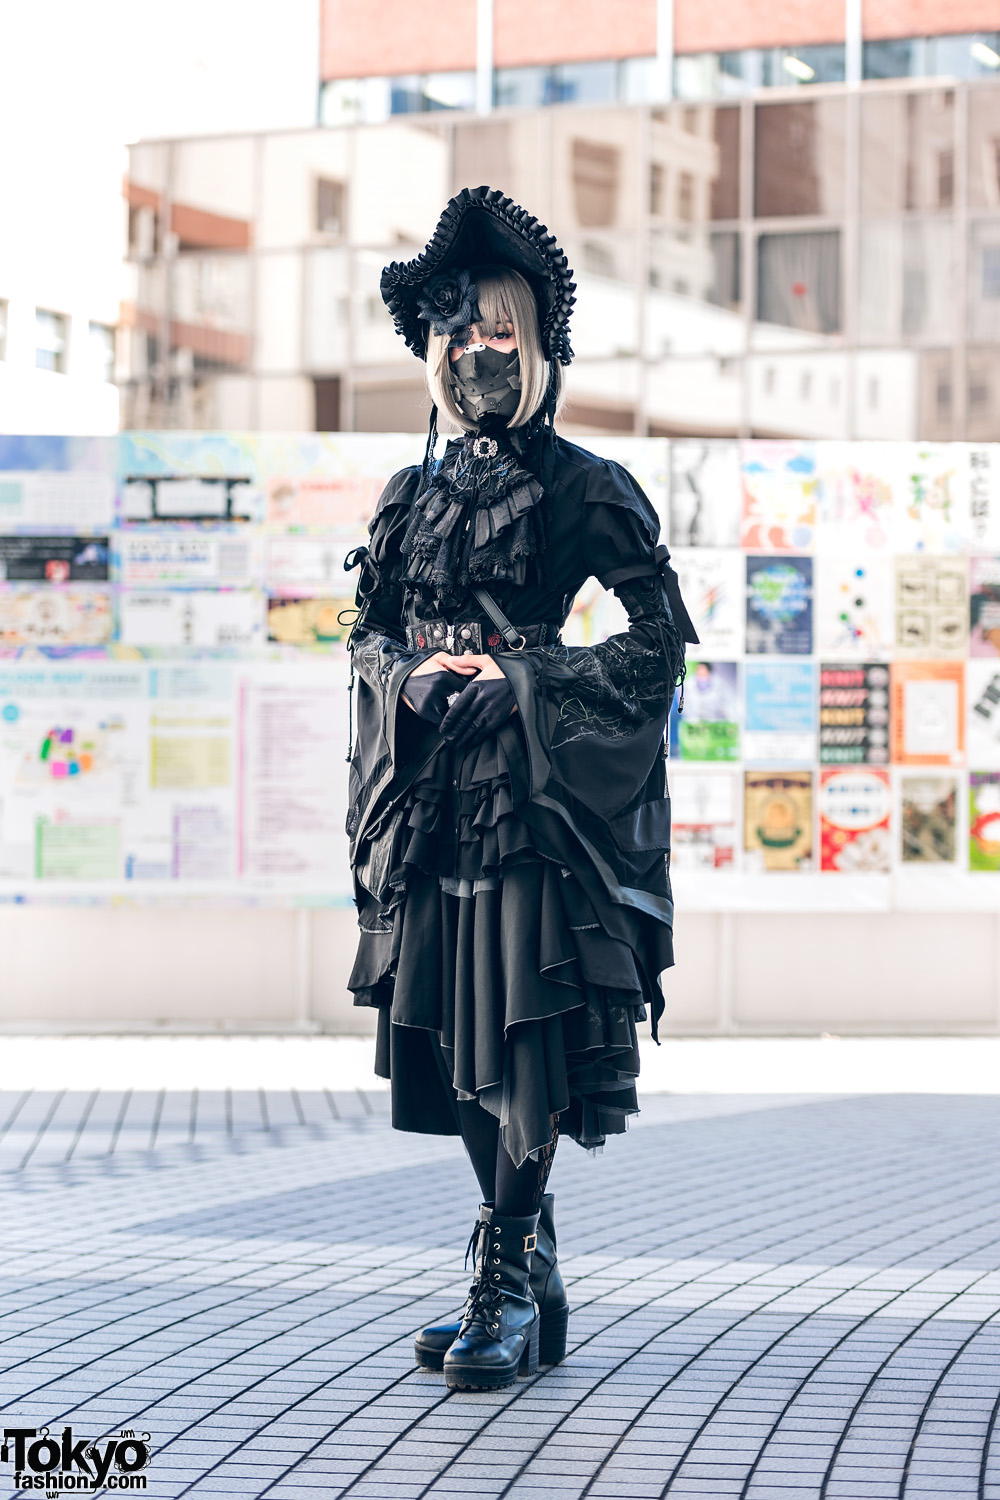 Gothic Japanese Steampunk Fashion w/ Face Mask, Bonnet, Floral Headpiece, Ruffle Shirt, Asymmetrical Skirt & Boots